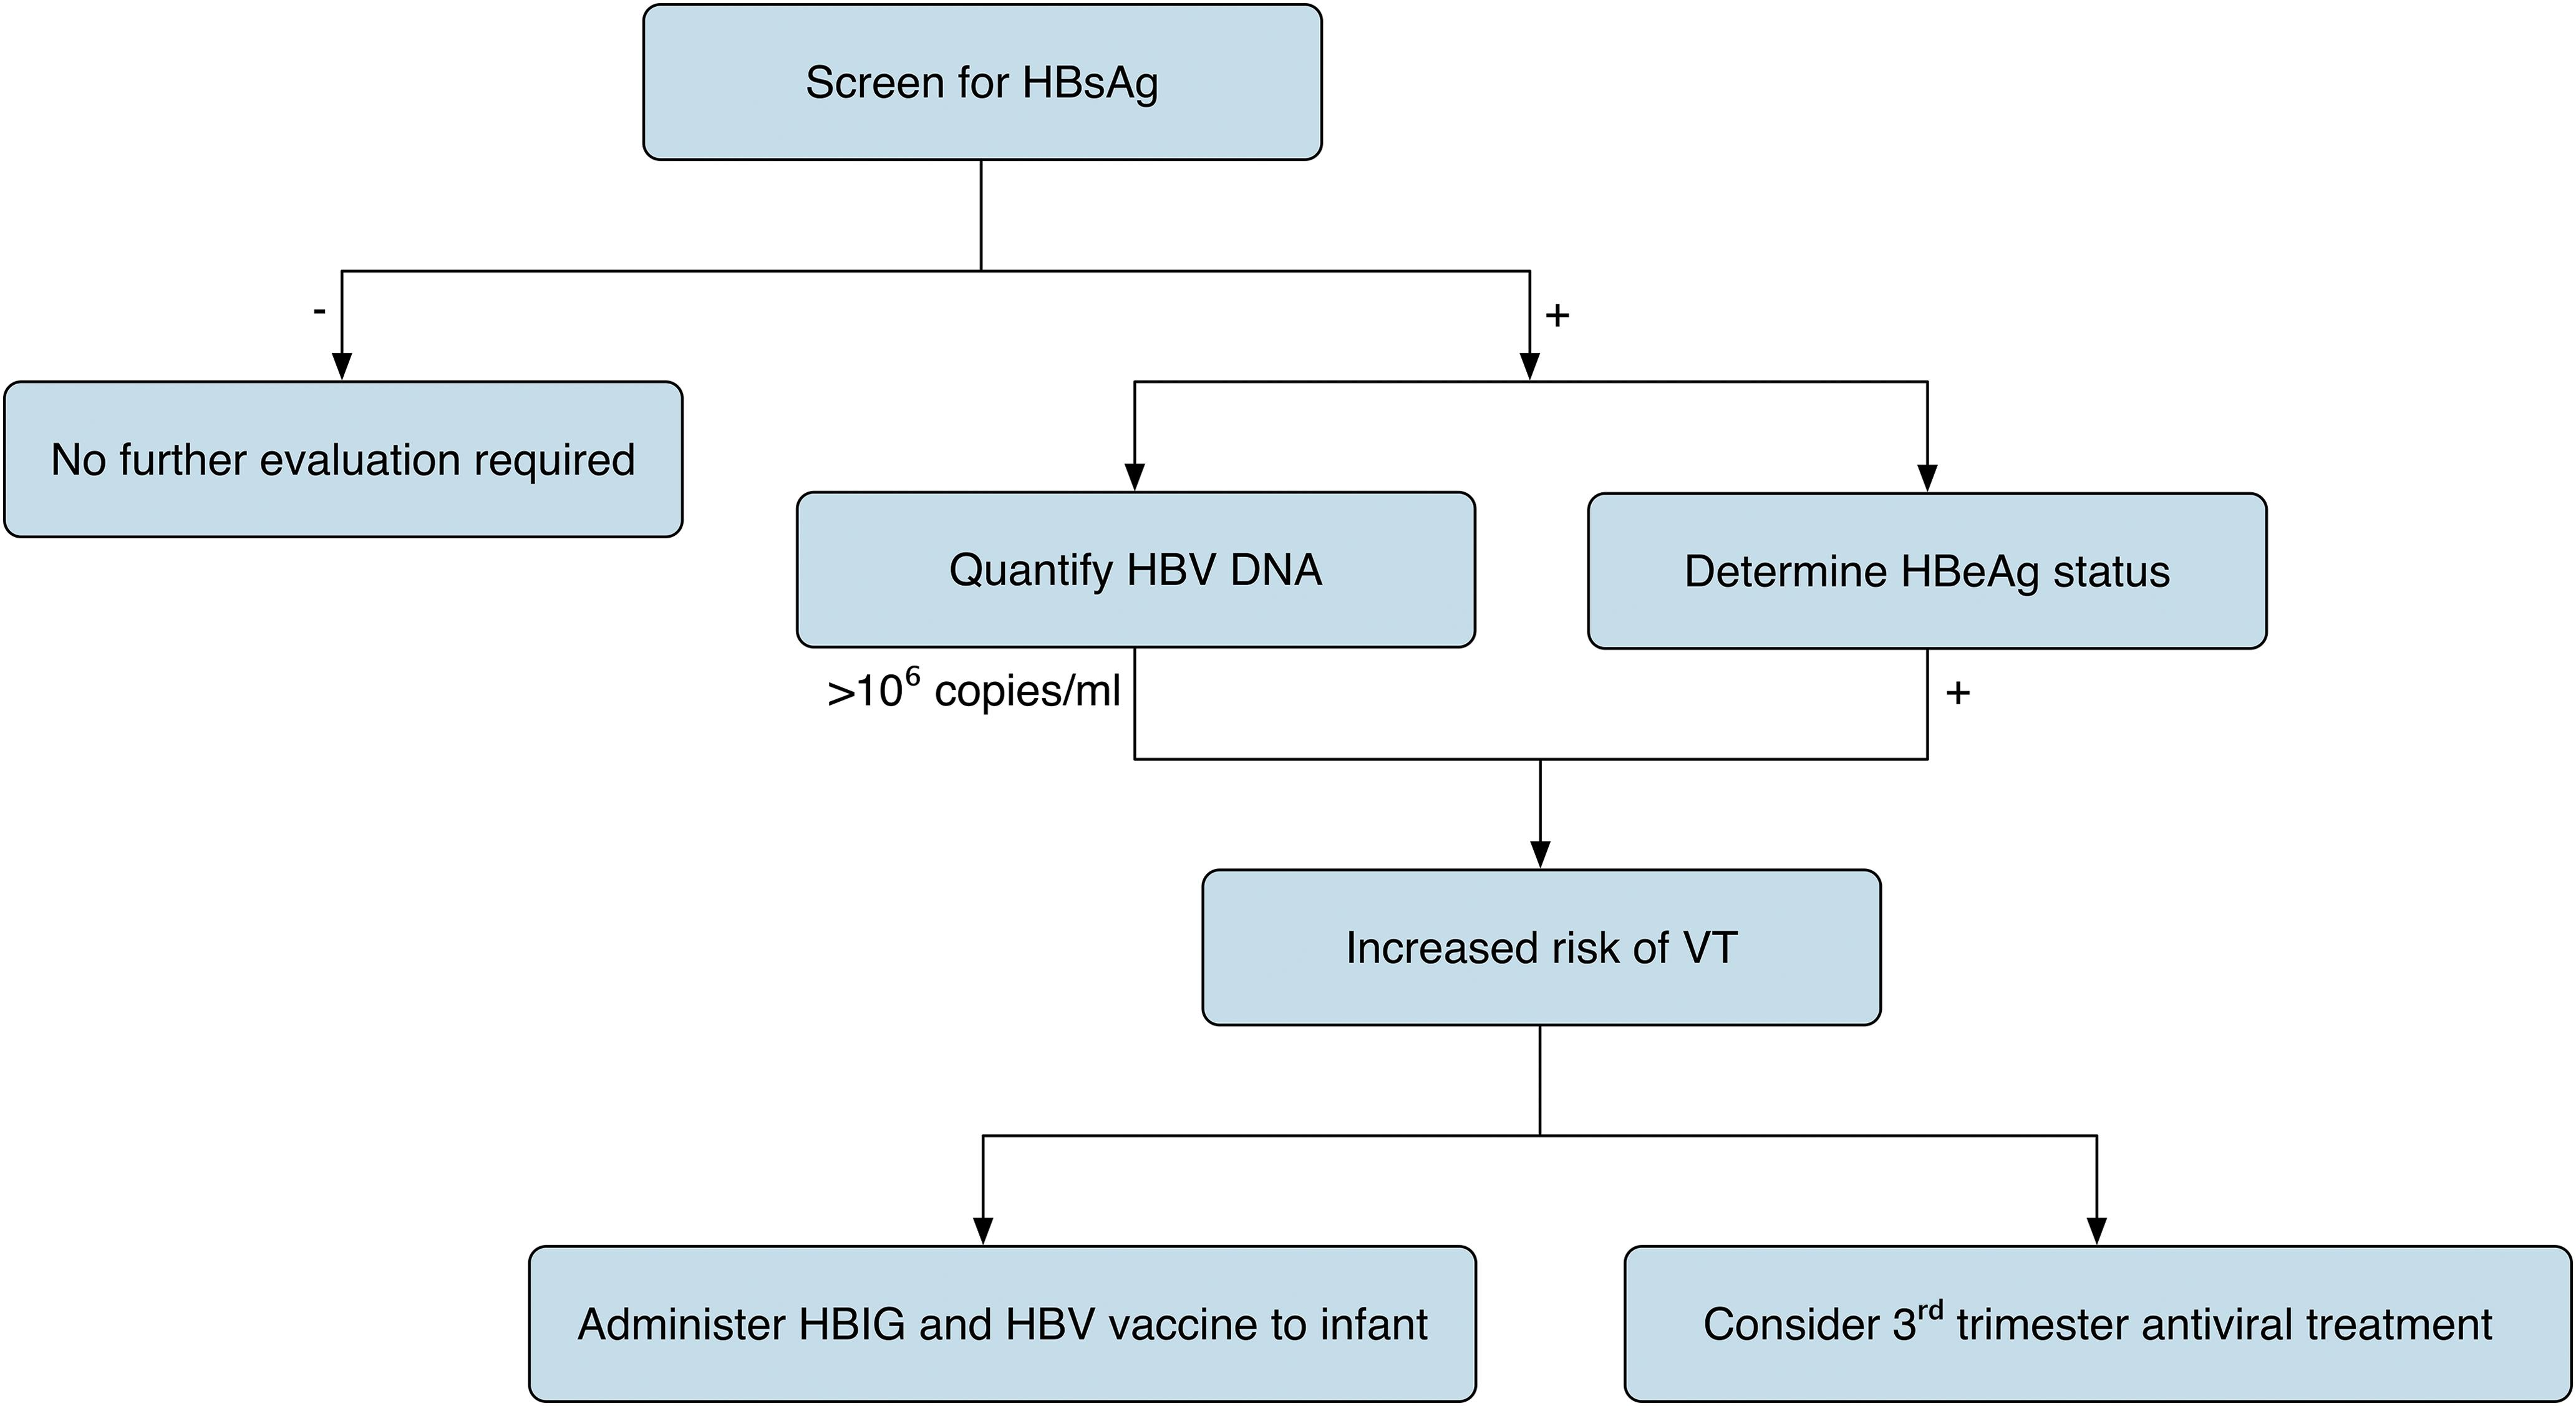 Screening and prevention of HBV in pregnant females.